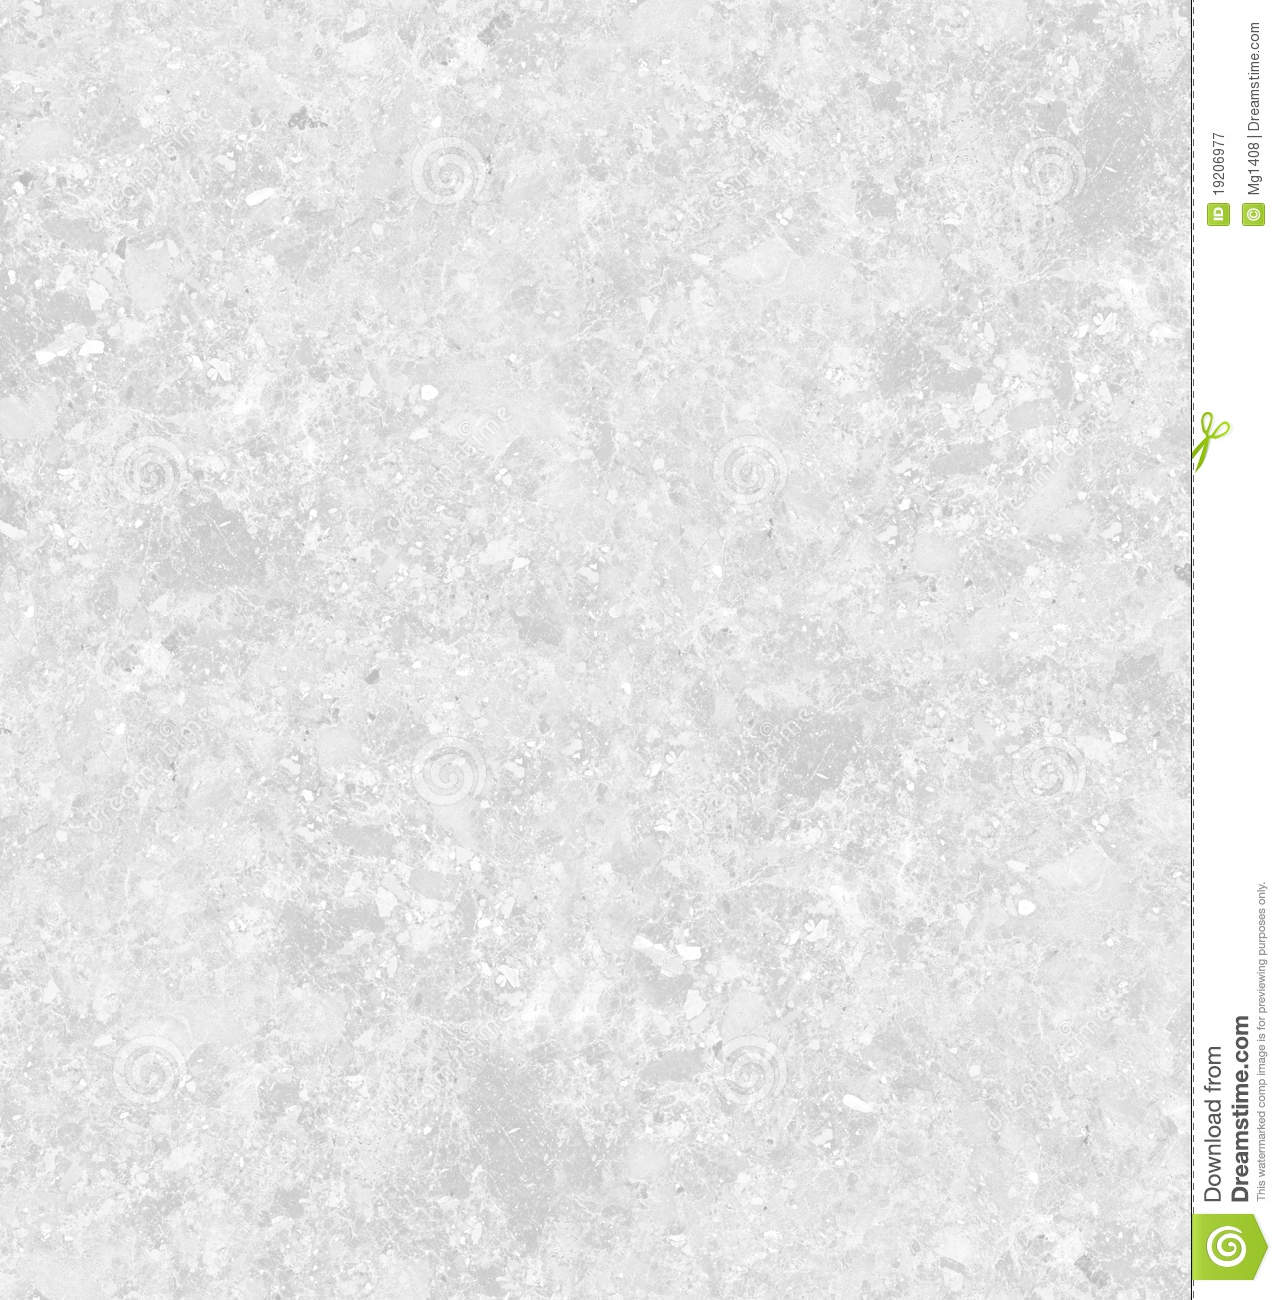 Large White Marble : White large marble texture royalty free stock photography